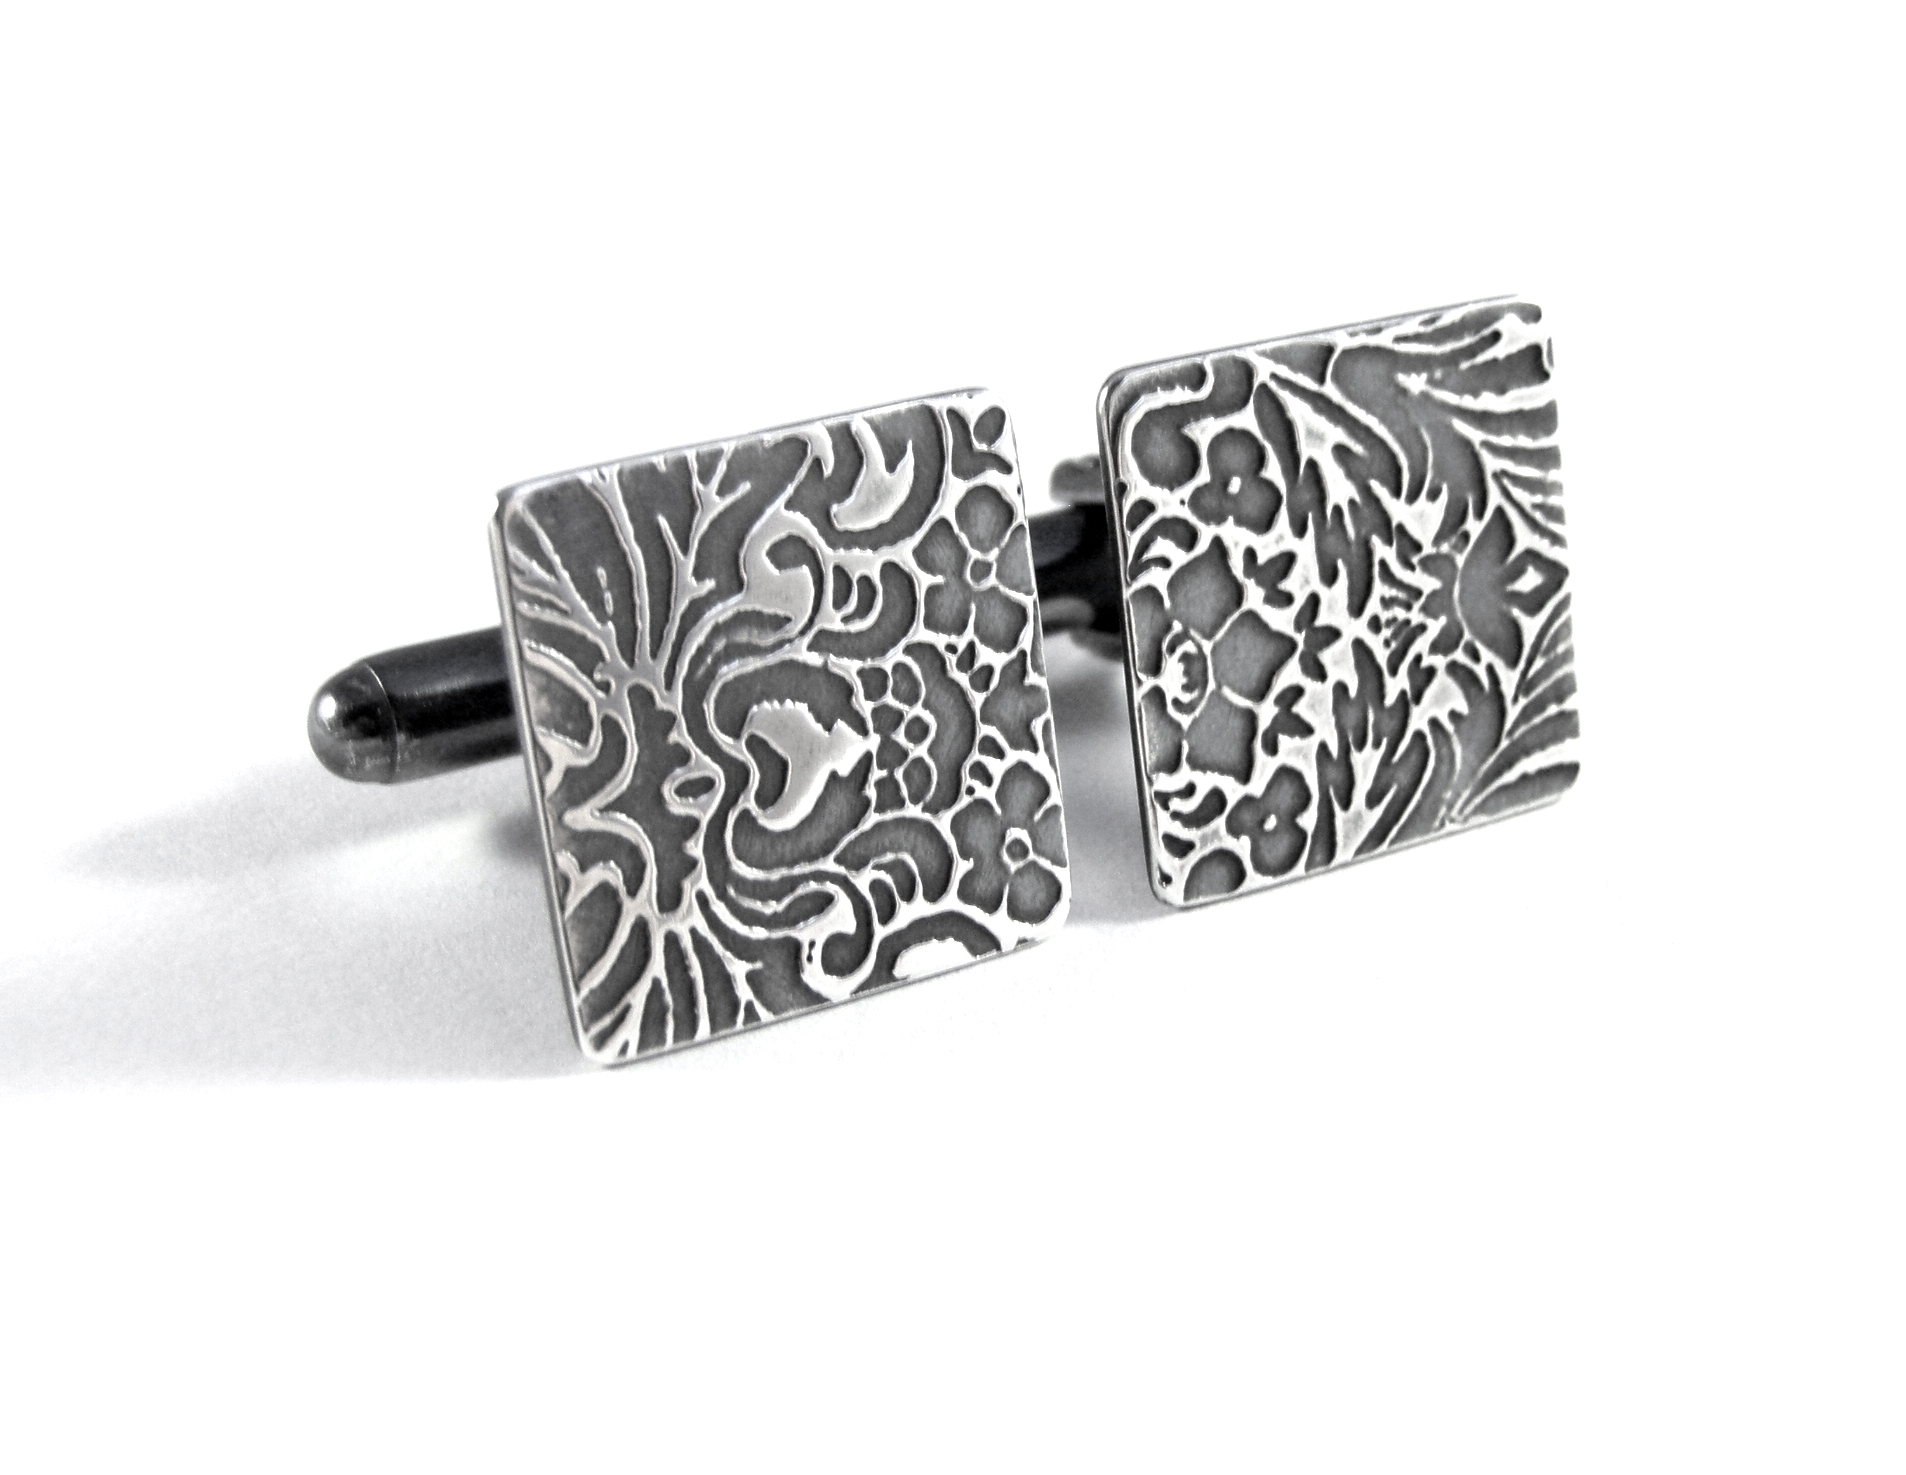 Baroque cufflinks